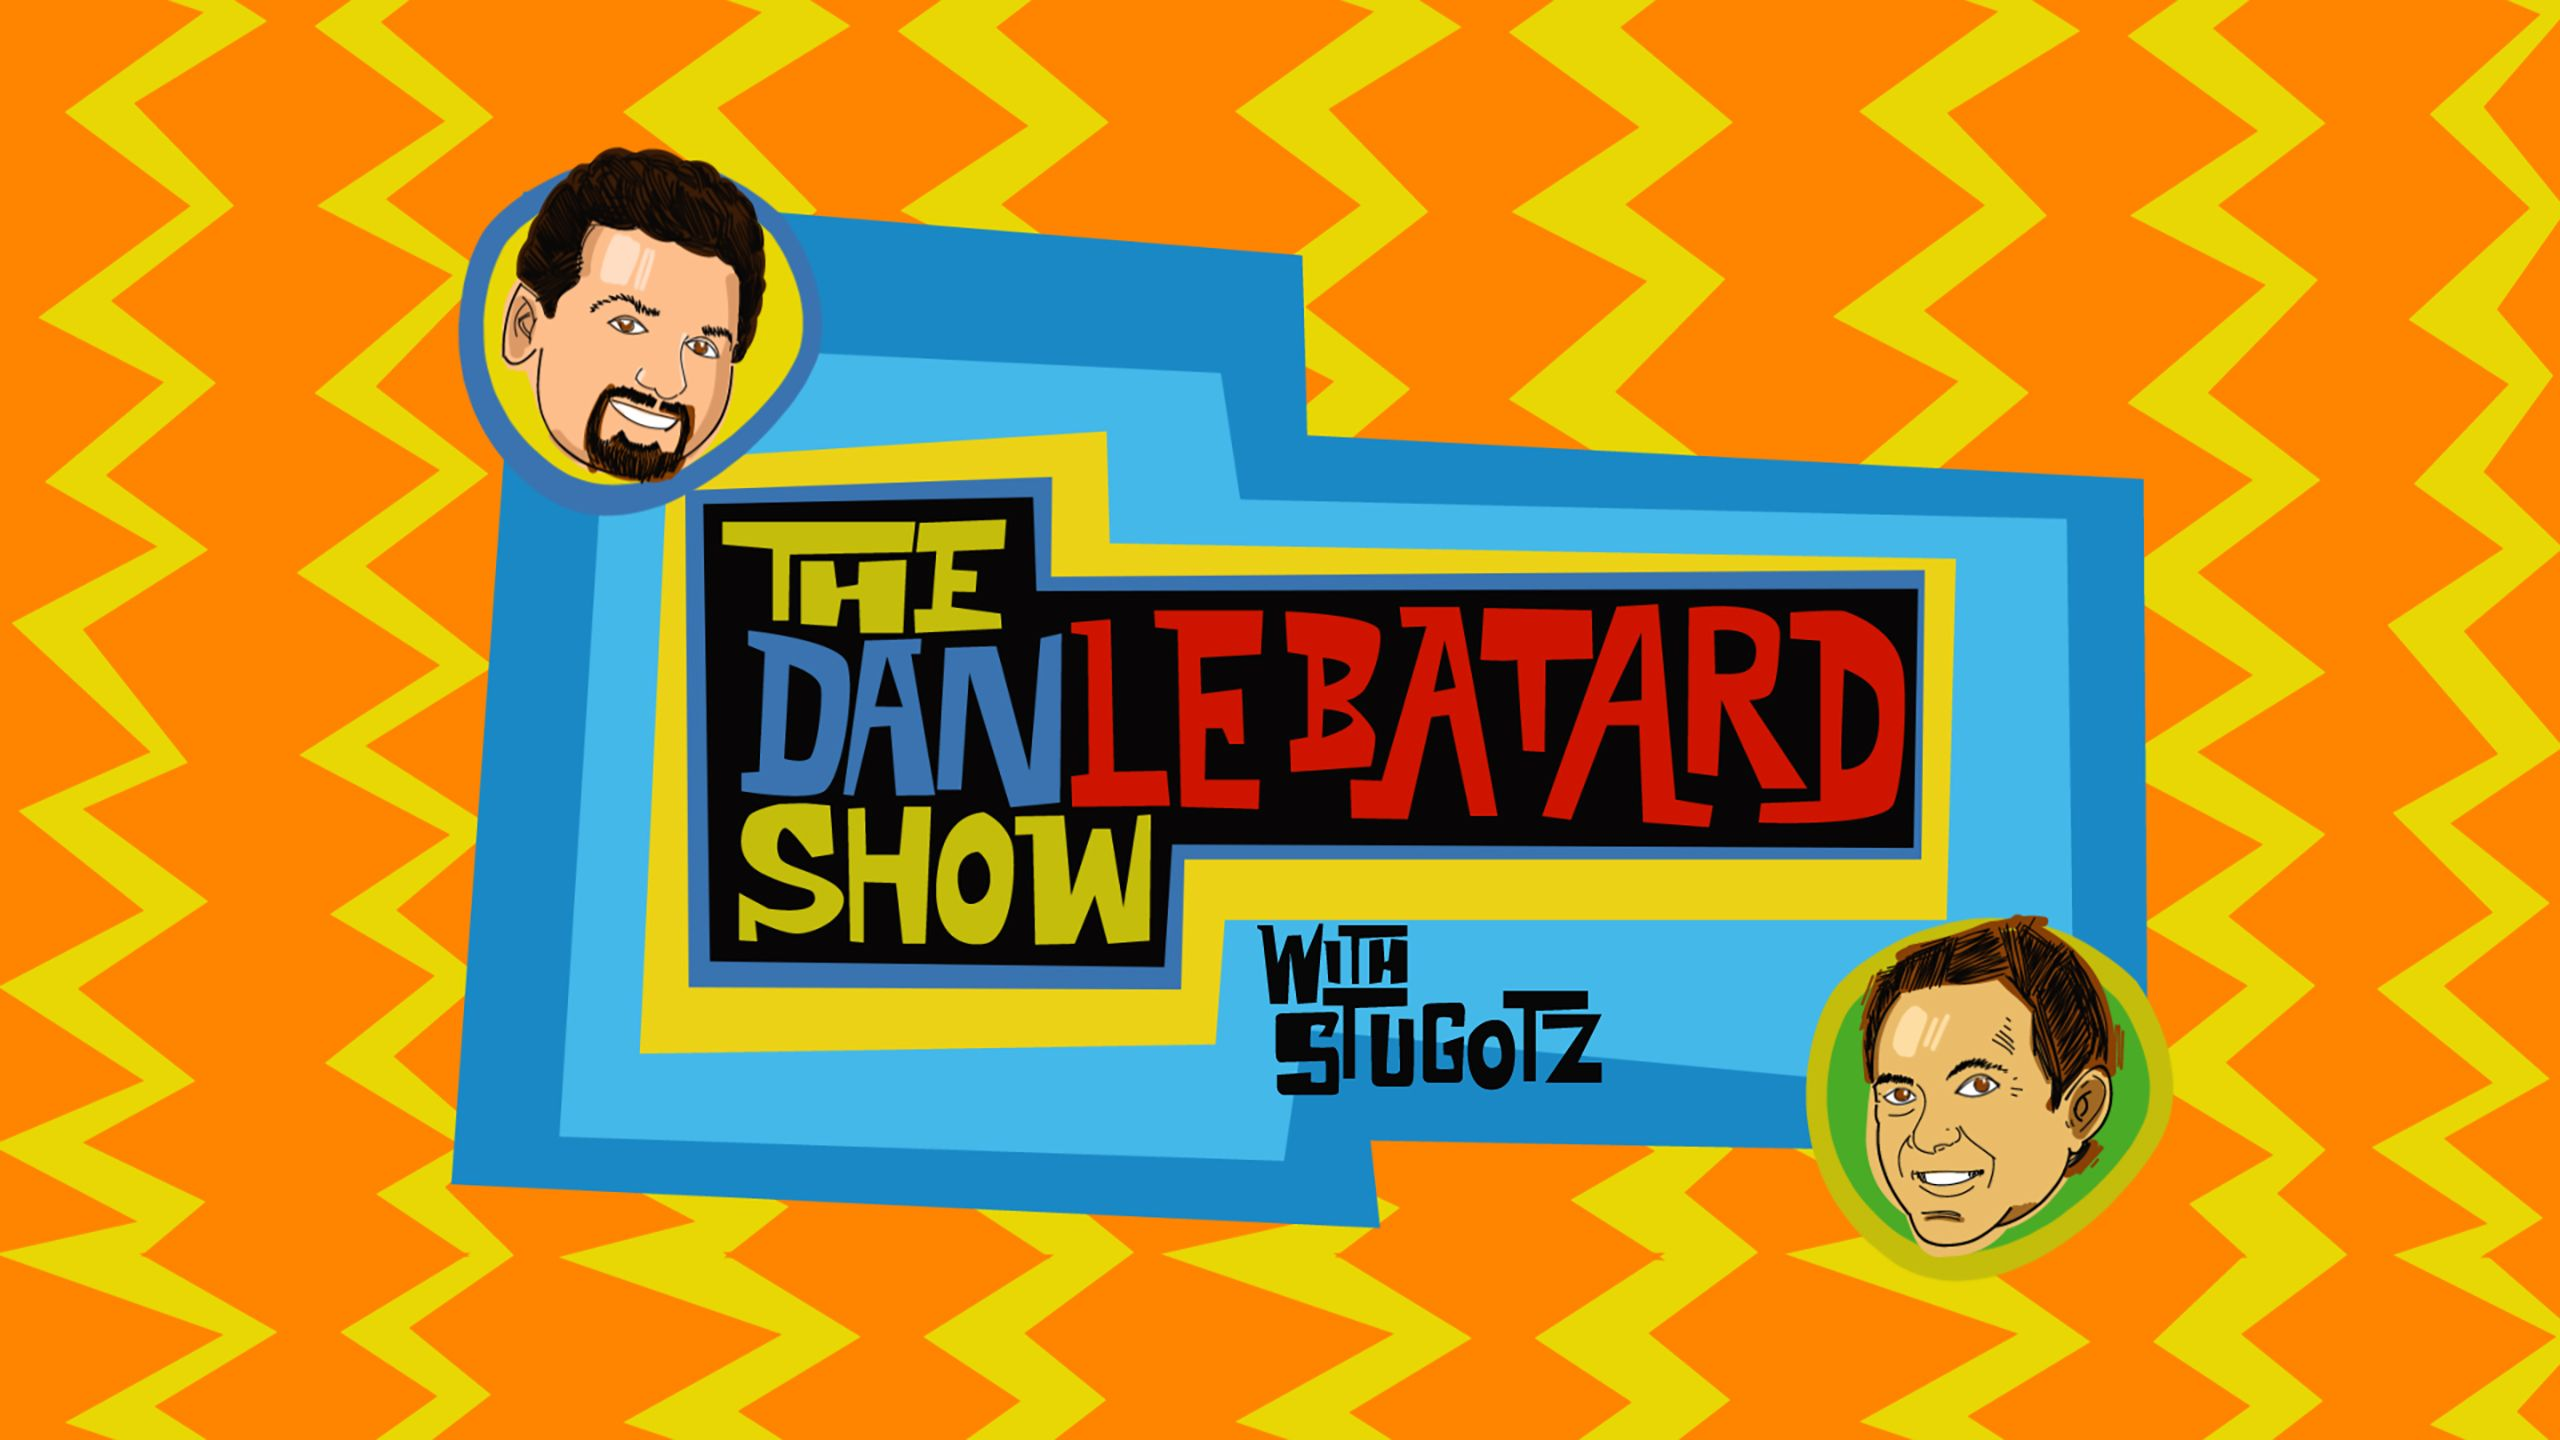 Fri, 4/20 - The Dan Le Batard Show with Stugotz Presented by Progressive